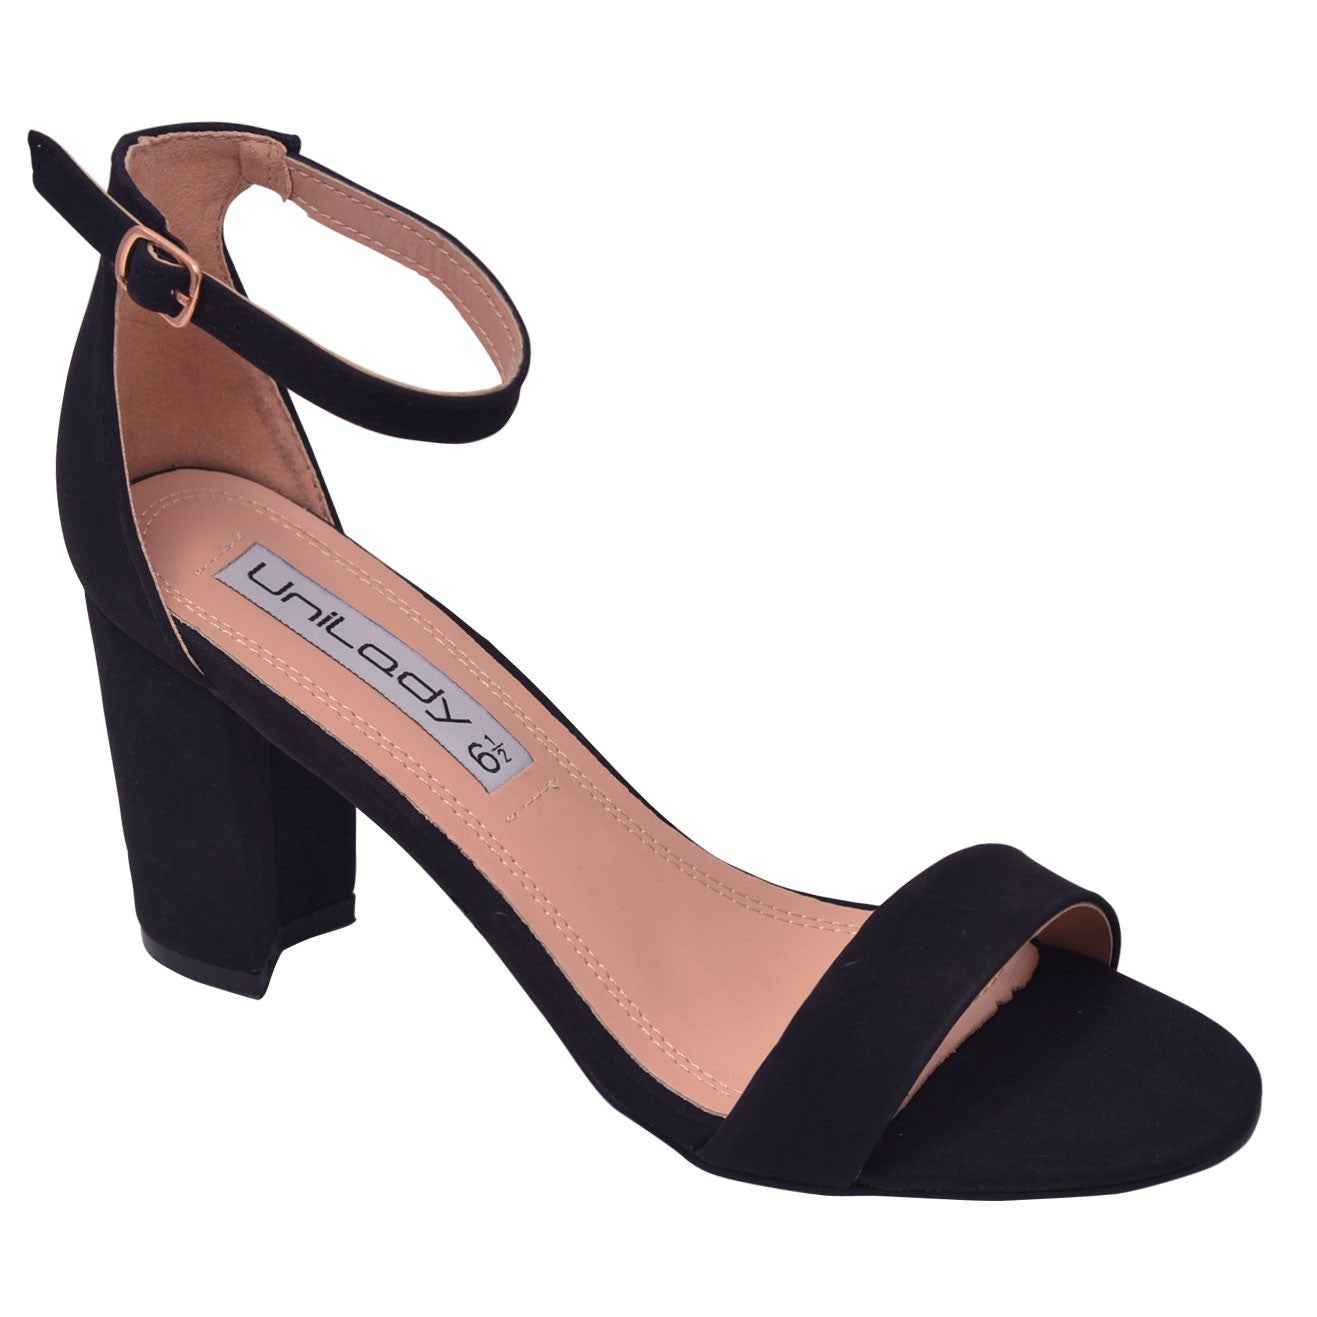 89e4cb2ffb2 Shop Unilady Adult Black Buckled Ankle Strap Open Toe Heeled Sandals - Free  Shipping On Orders Over  45 - Overstock - 23542117